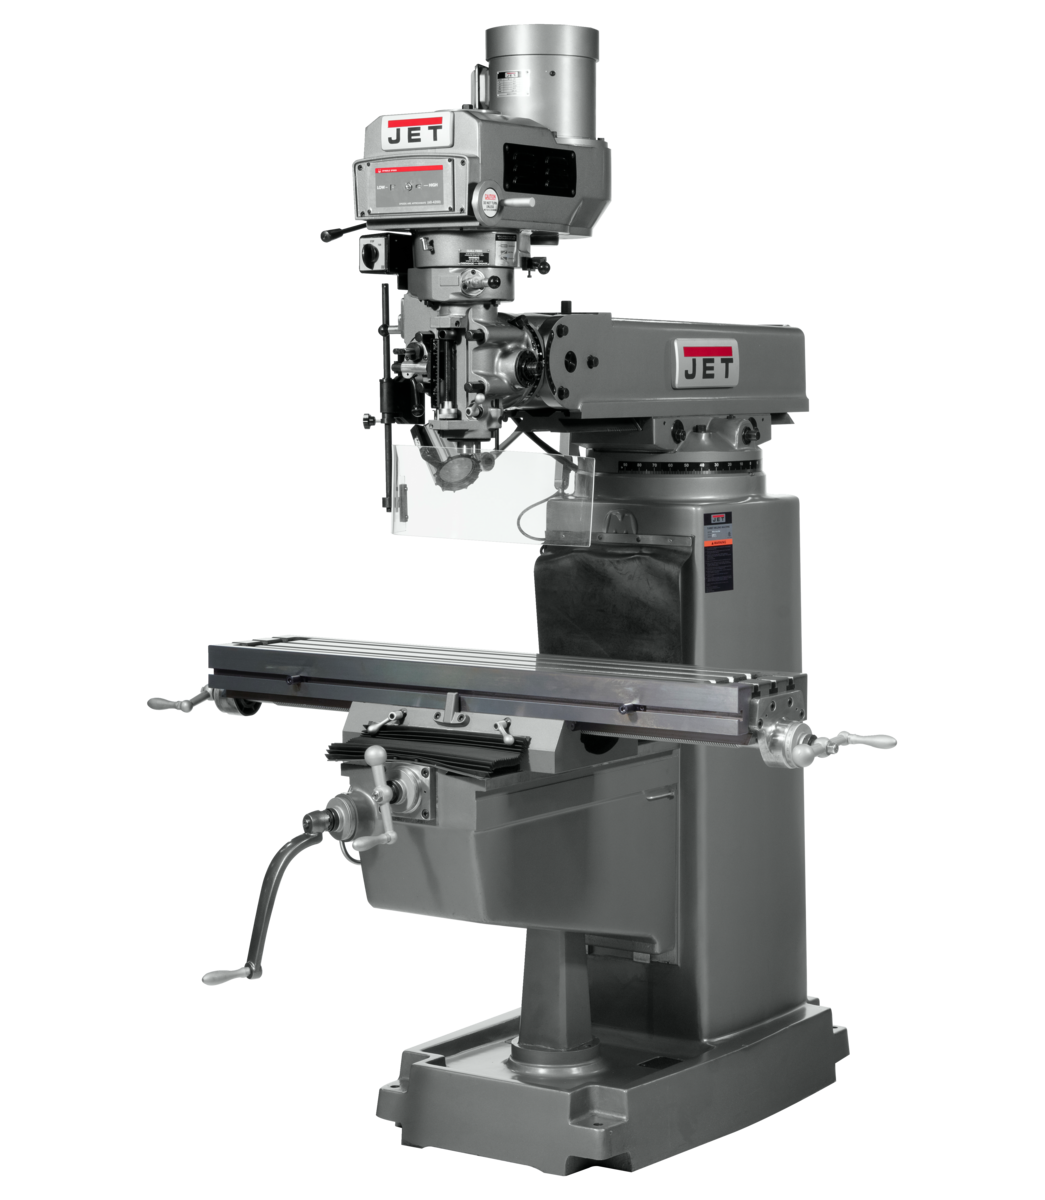 "JTM-1050VS2 Mill With ACU-RITE 203 DRO With X-Axis Powerfeed and 8"" Riser Block"